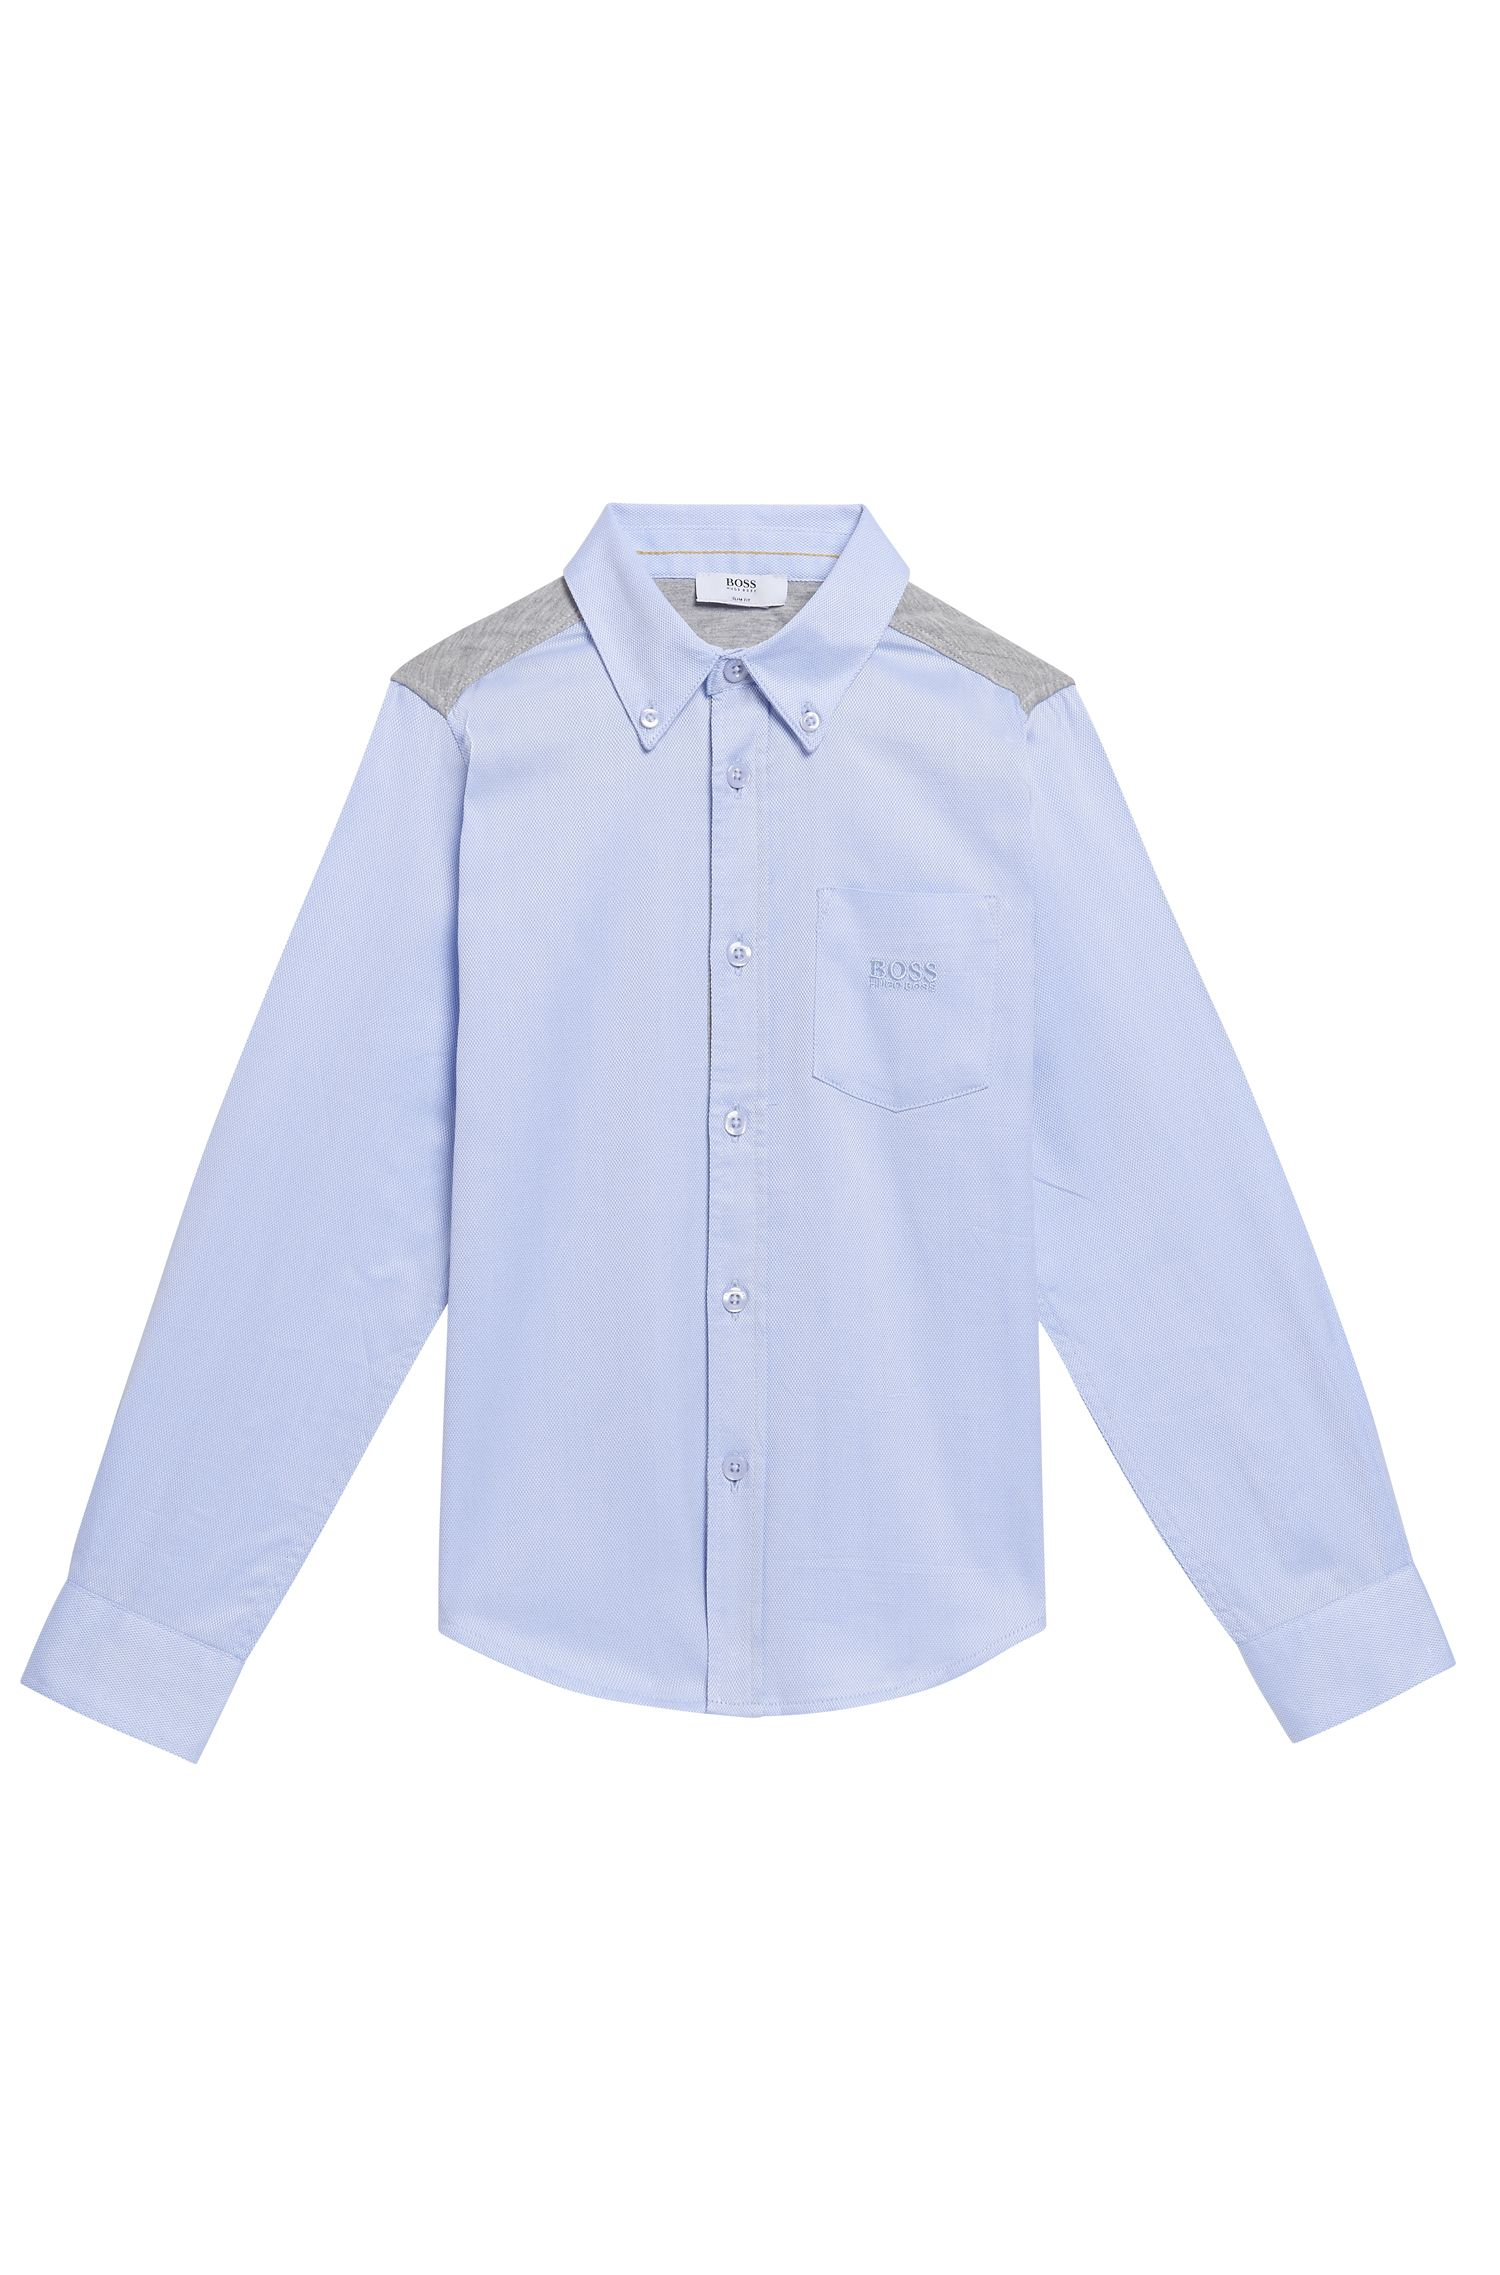 'J25990' | Boys Cotton Jersey Oxford Button Down Shirt